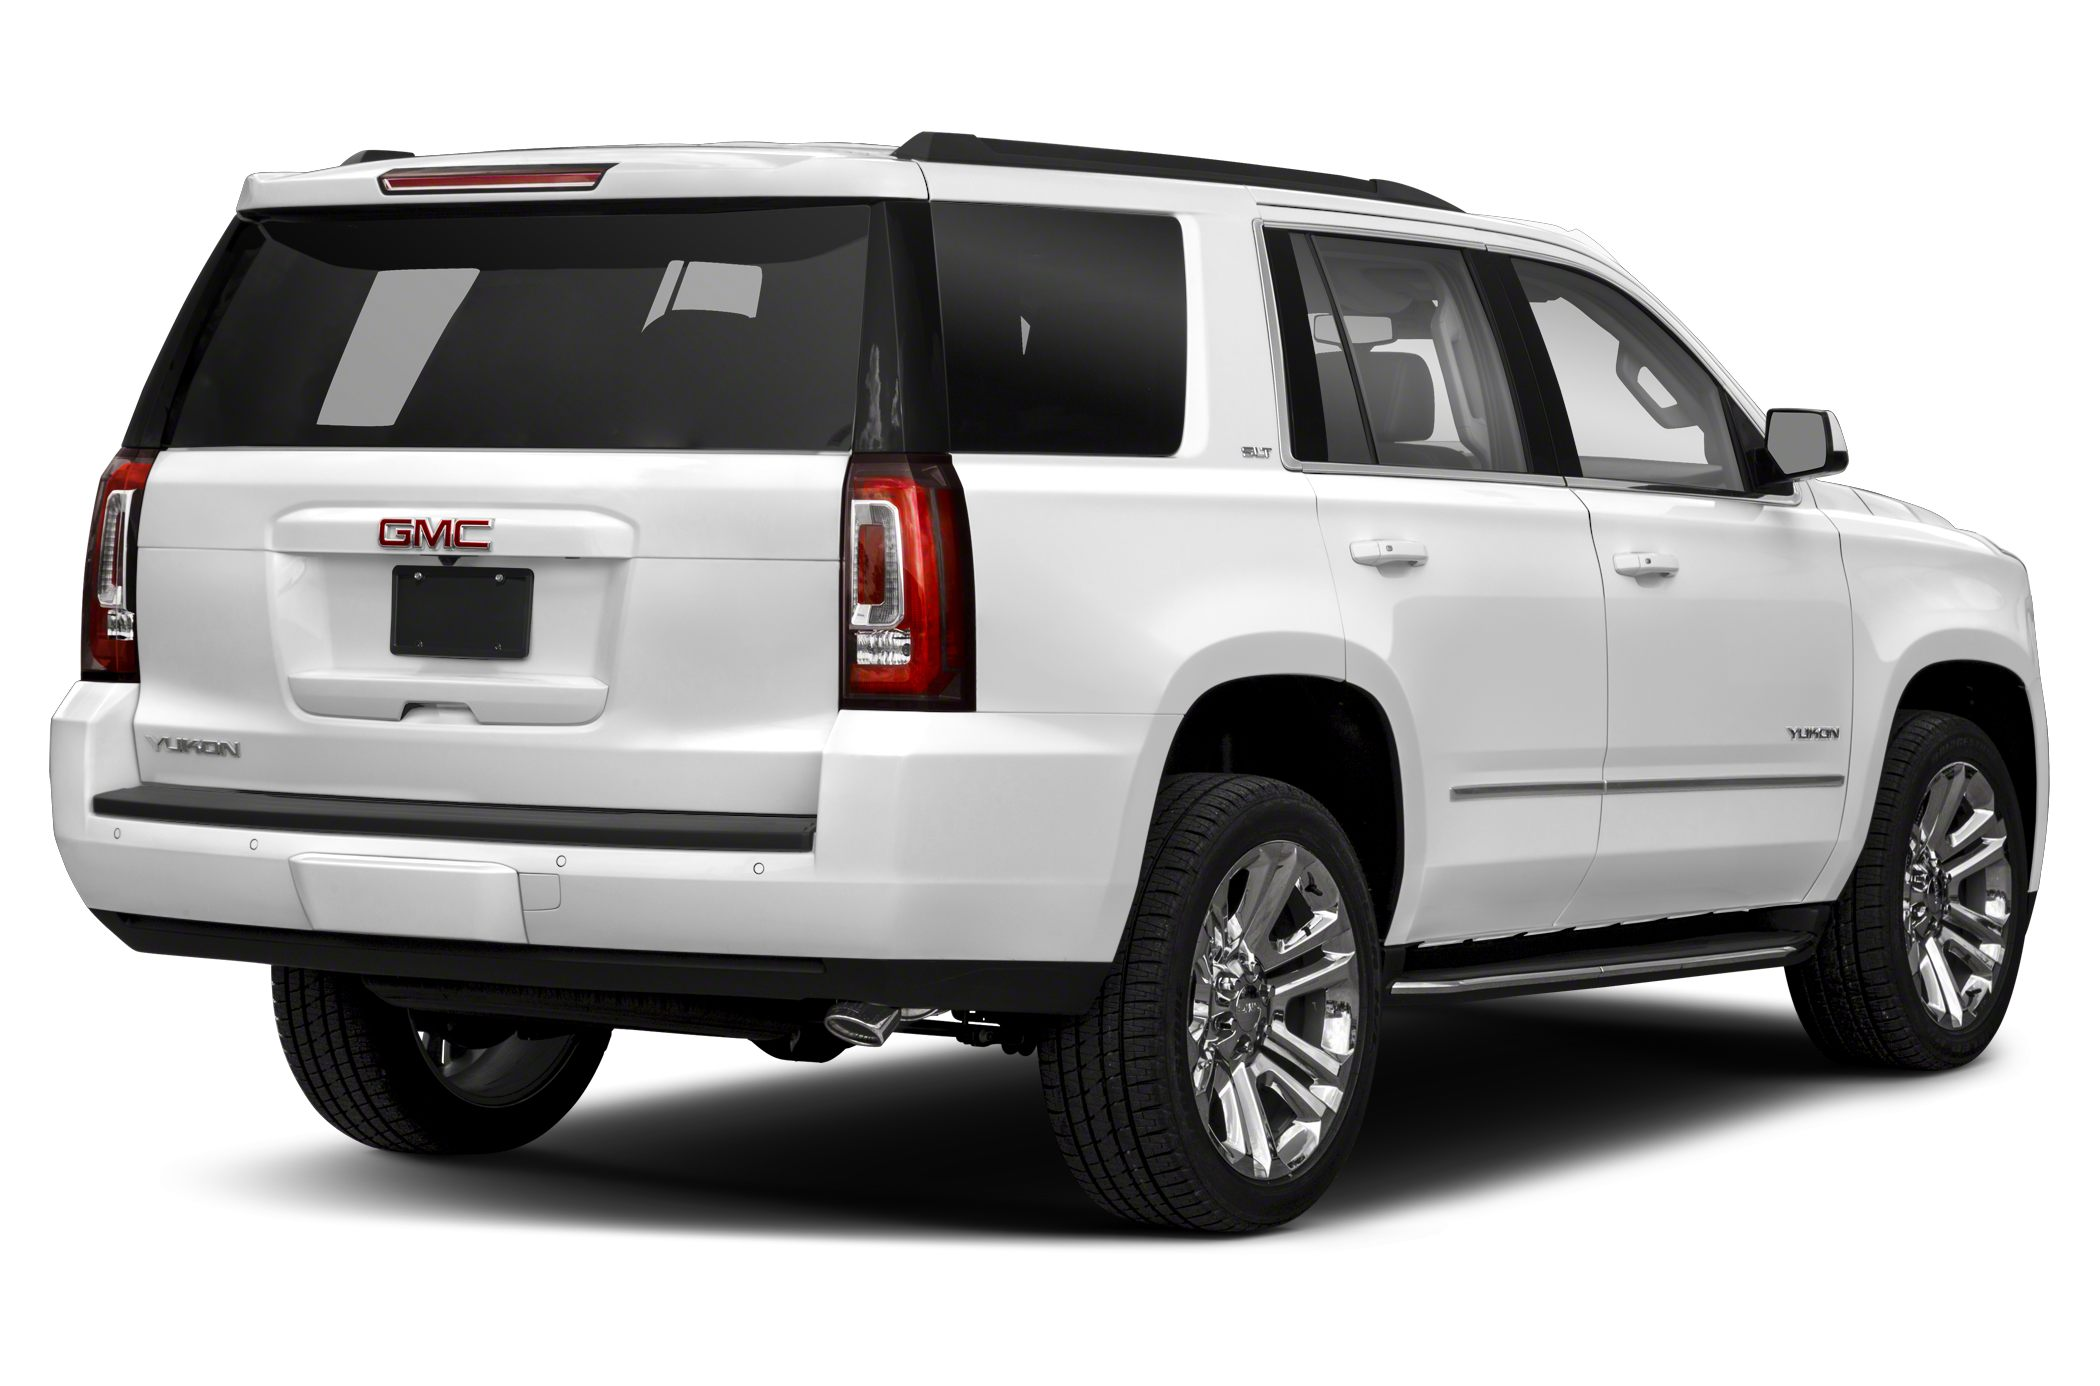 2018 GMC Yukon for sale in Kitchener - Scherer Chevrolet Buick GMC Ltd.